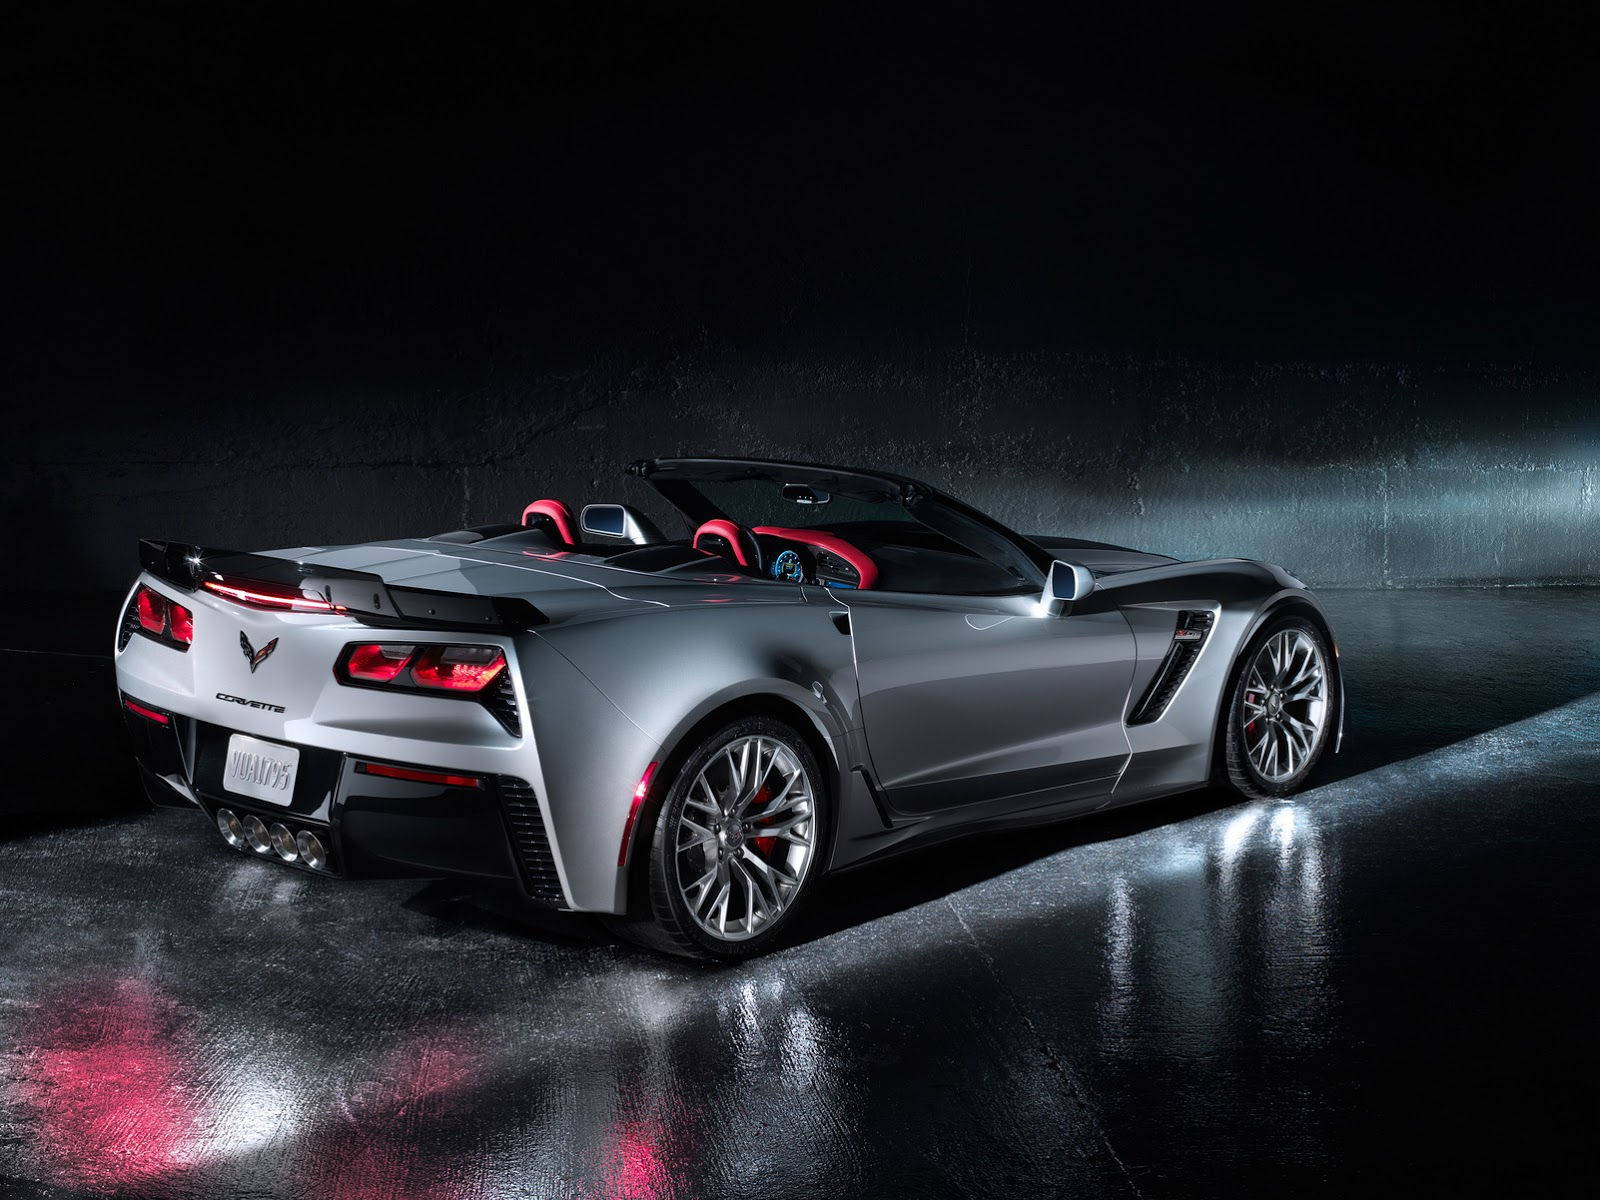 new 2015 corvette stingray z06 is bloody fast hits 60mph in seconds carscoops. Black Bedroom Furniture Sets. Home Design Ideas